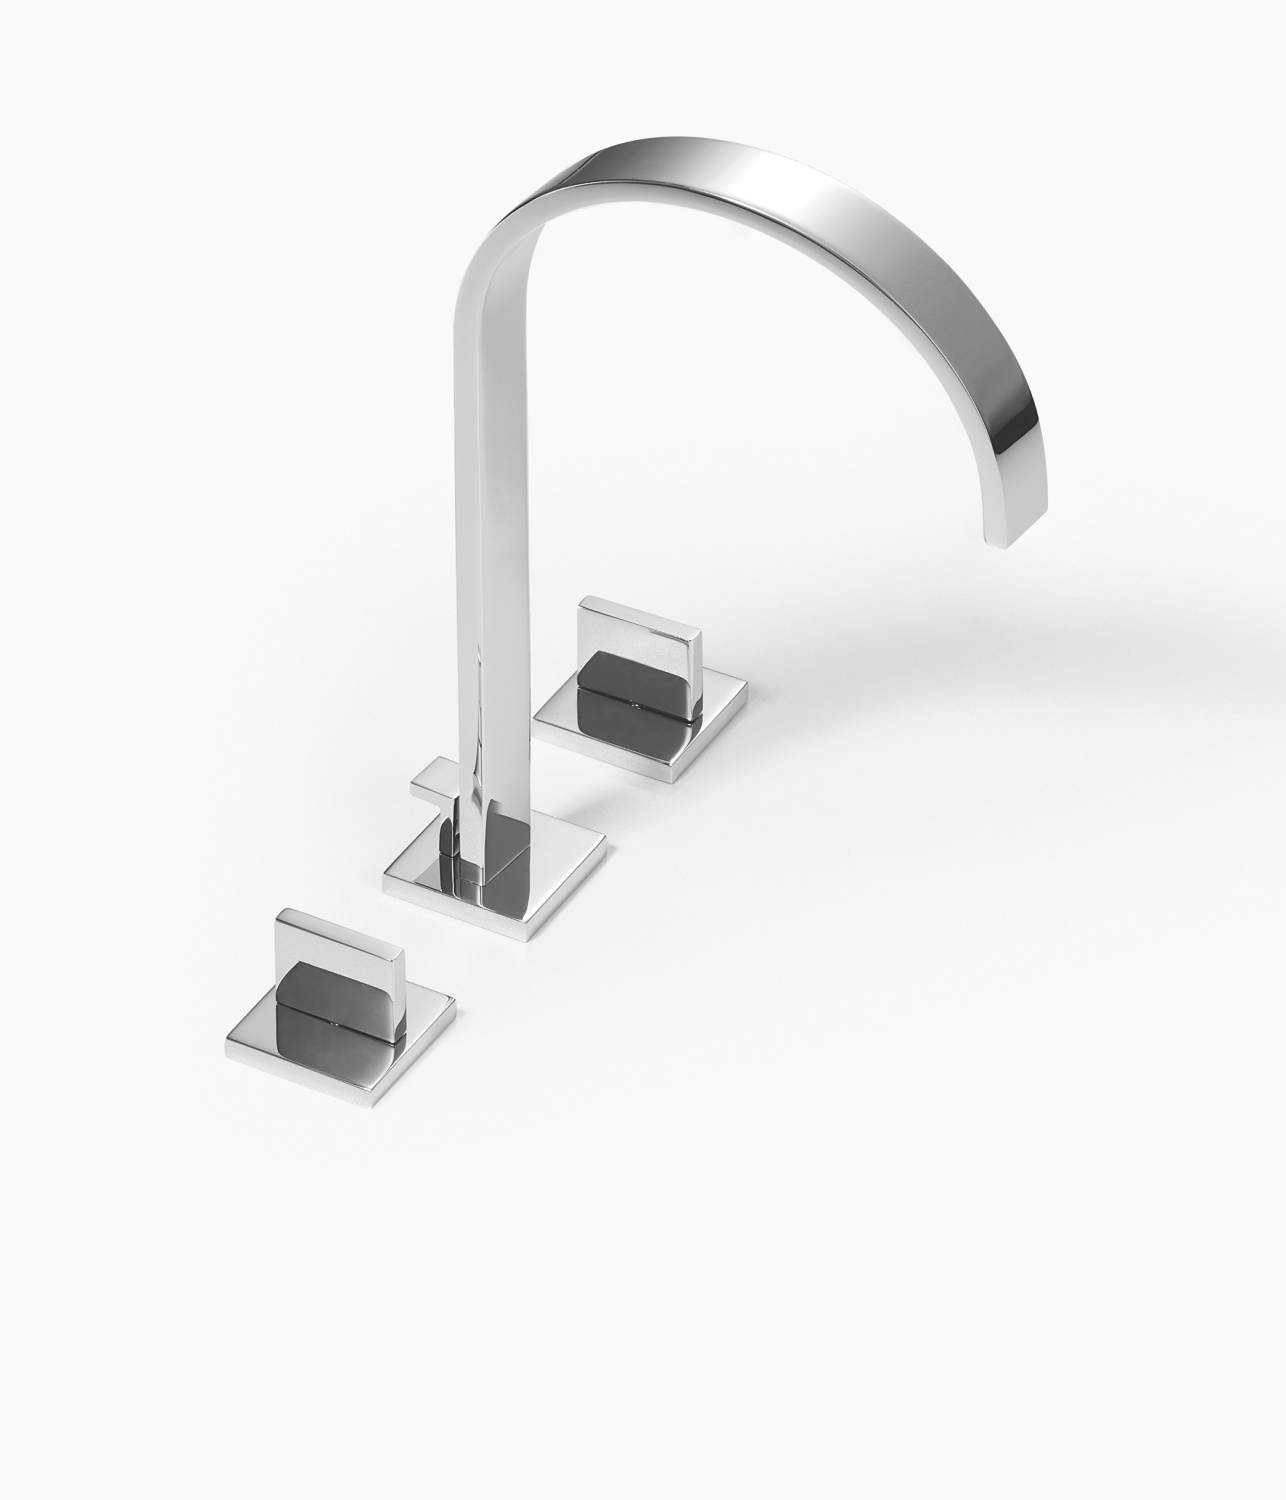 Three-hole basin mixer with raised spout with pop-up waste - platinum - 20 728 782-08